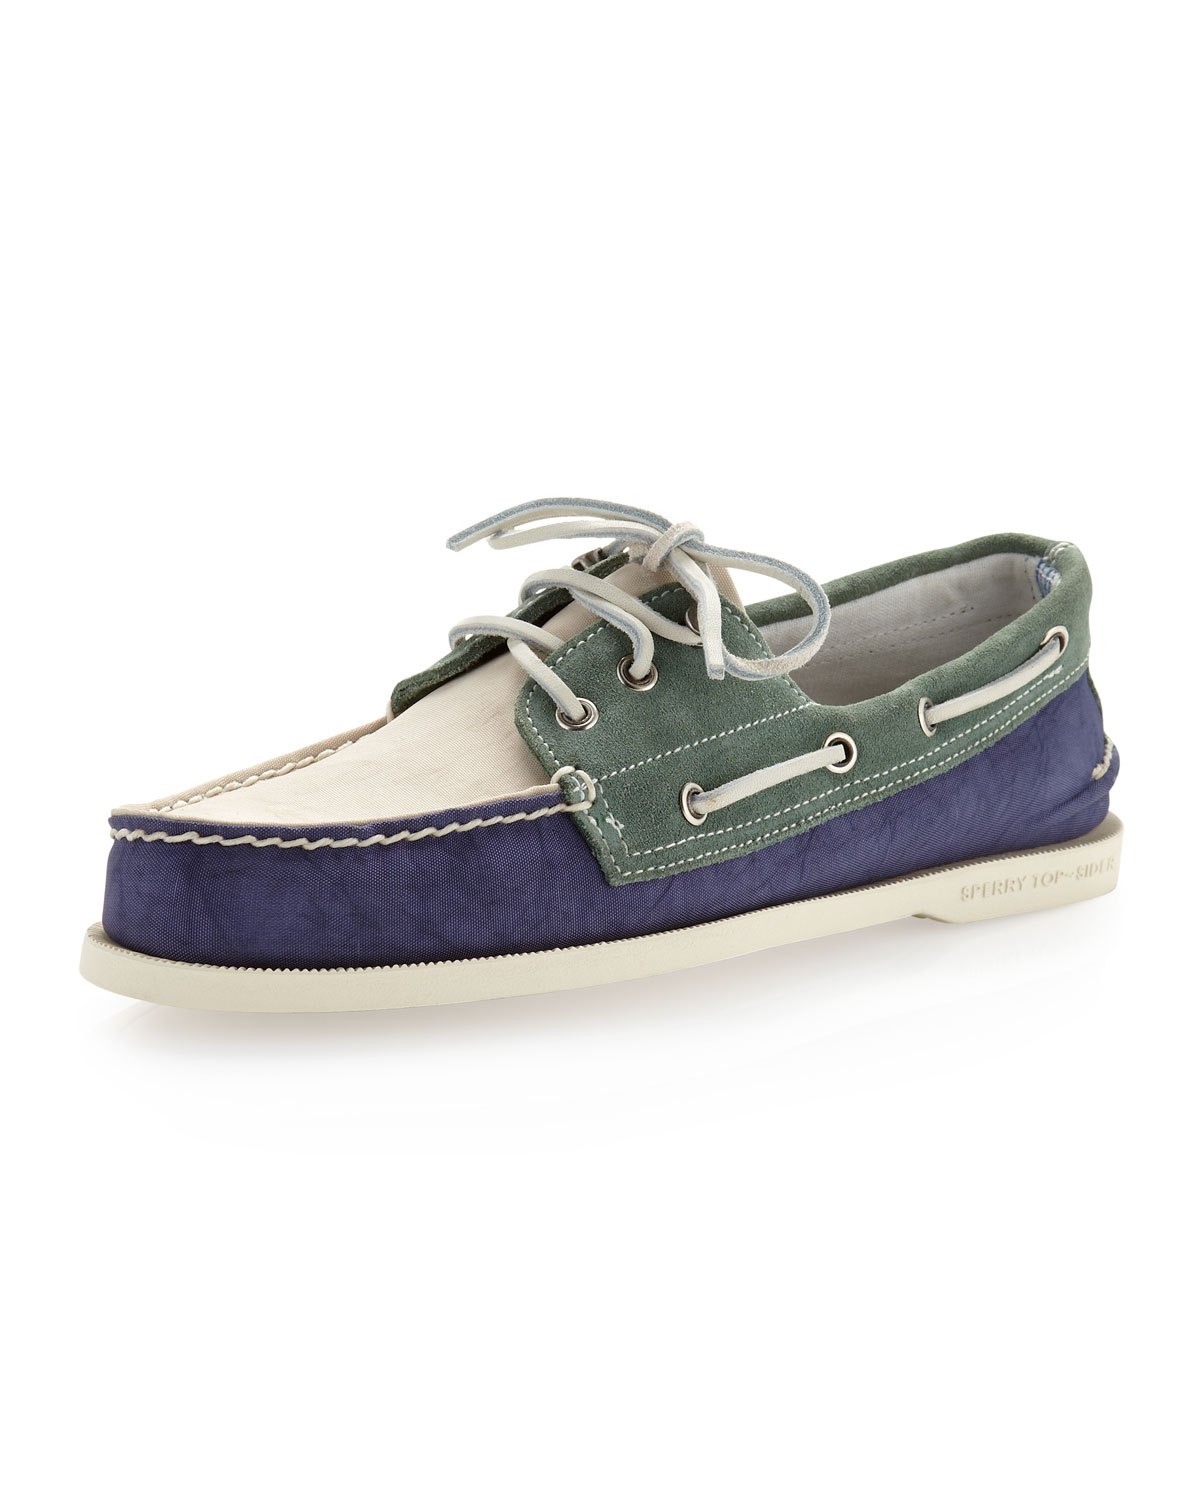 Sperry Top Sider Colorblock Boat Shoe In Blue For Men Lyst